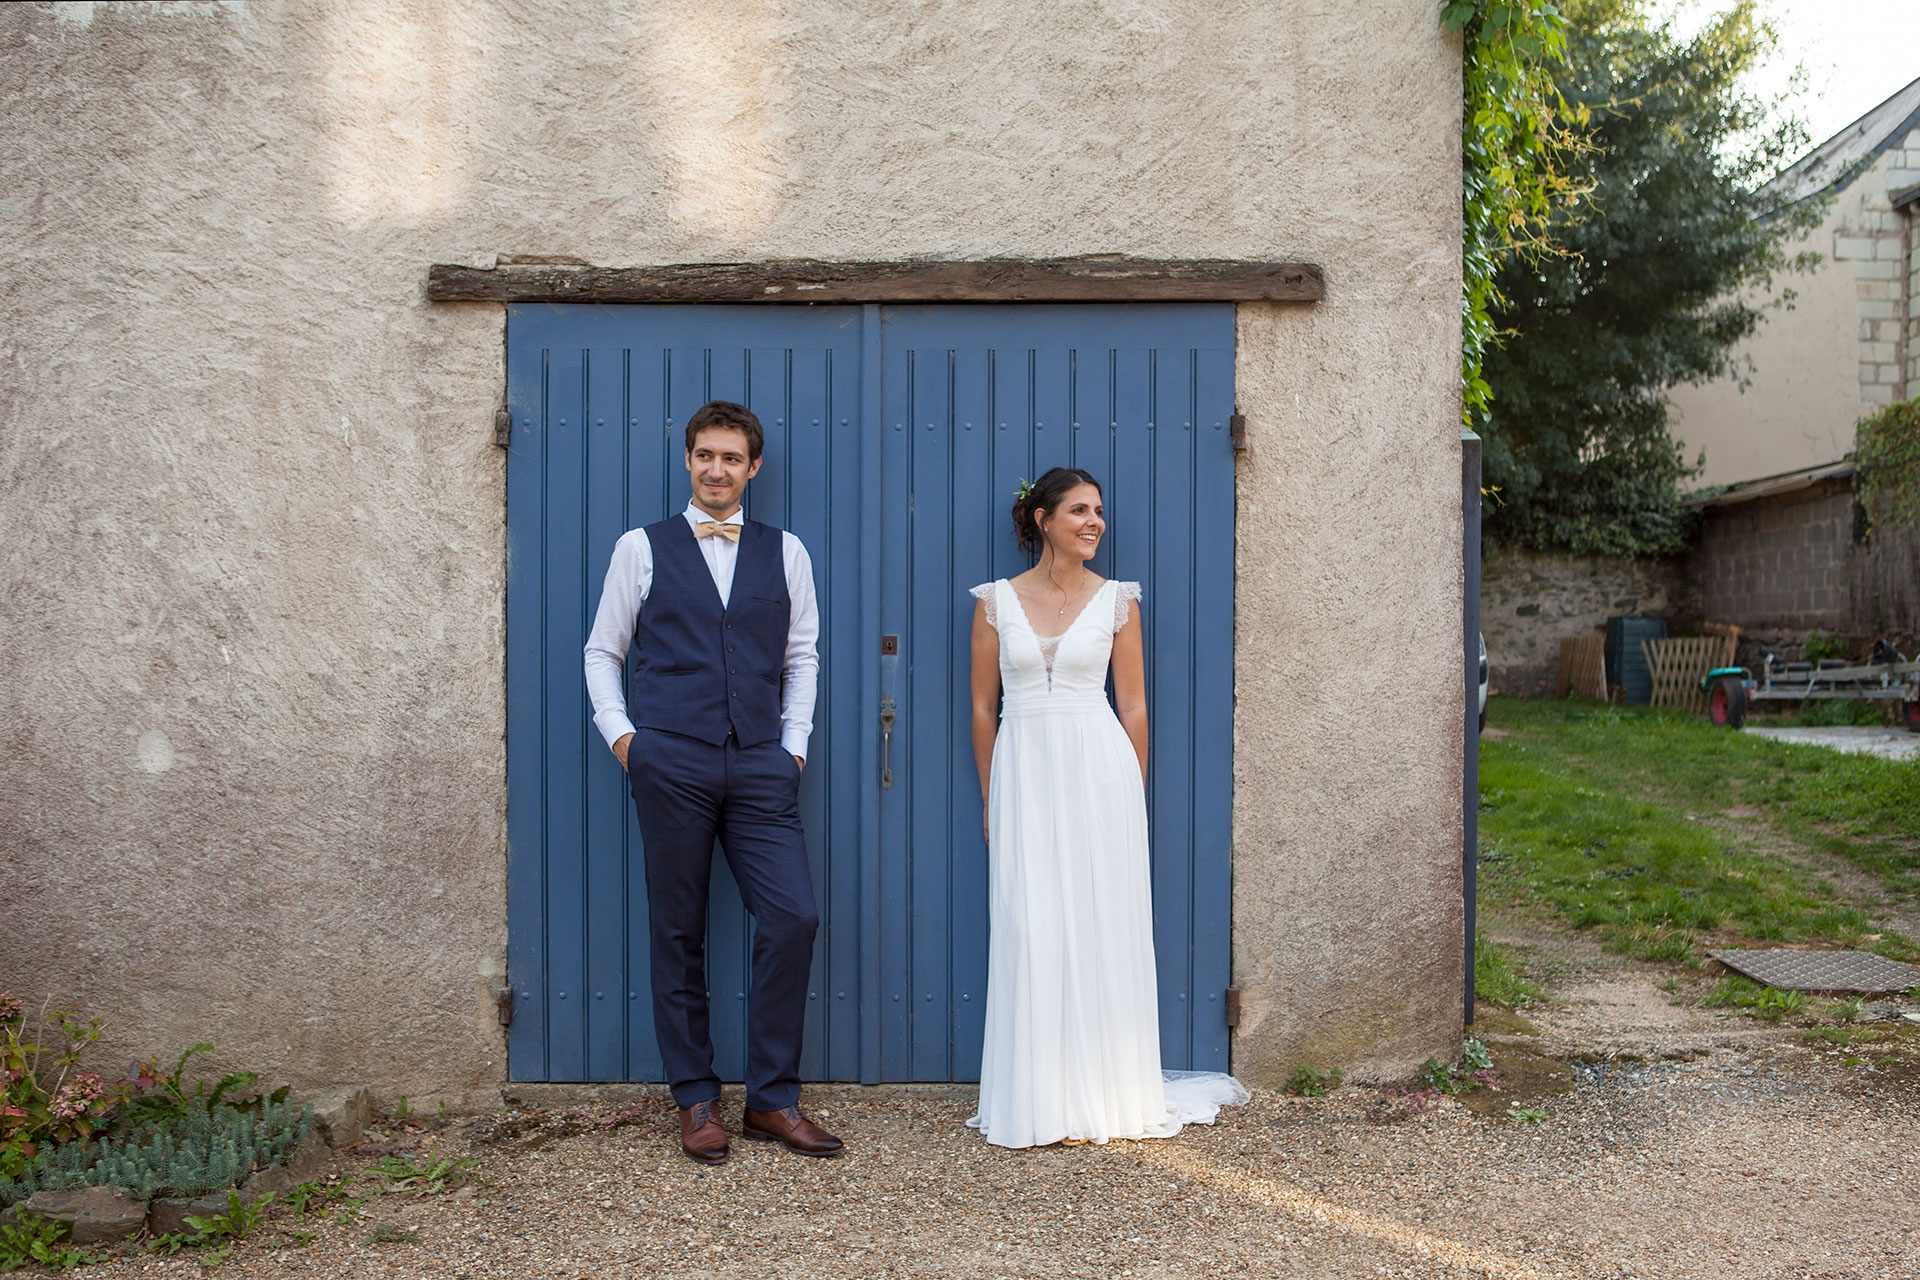 particuliers-evenements-mariage-oui-elise&quentin-69